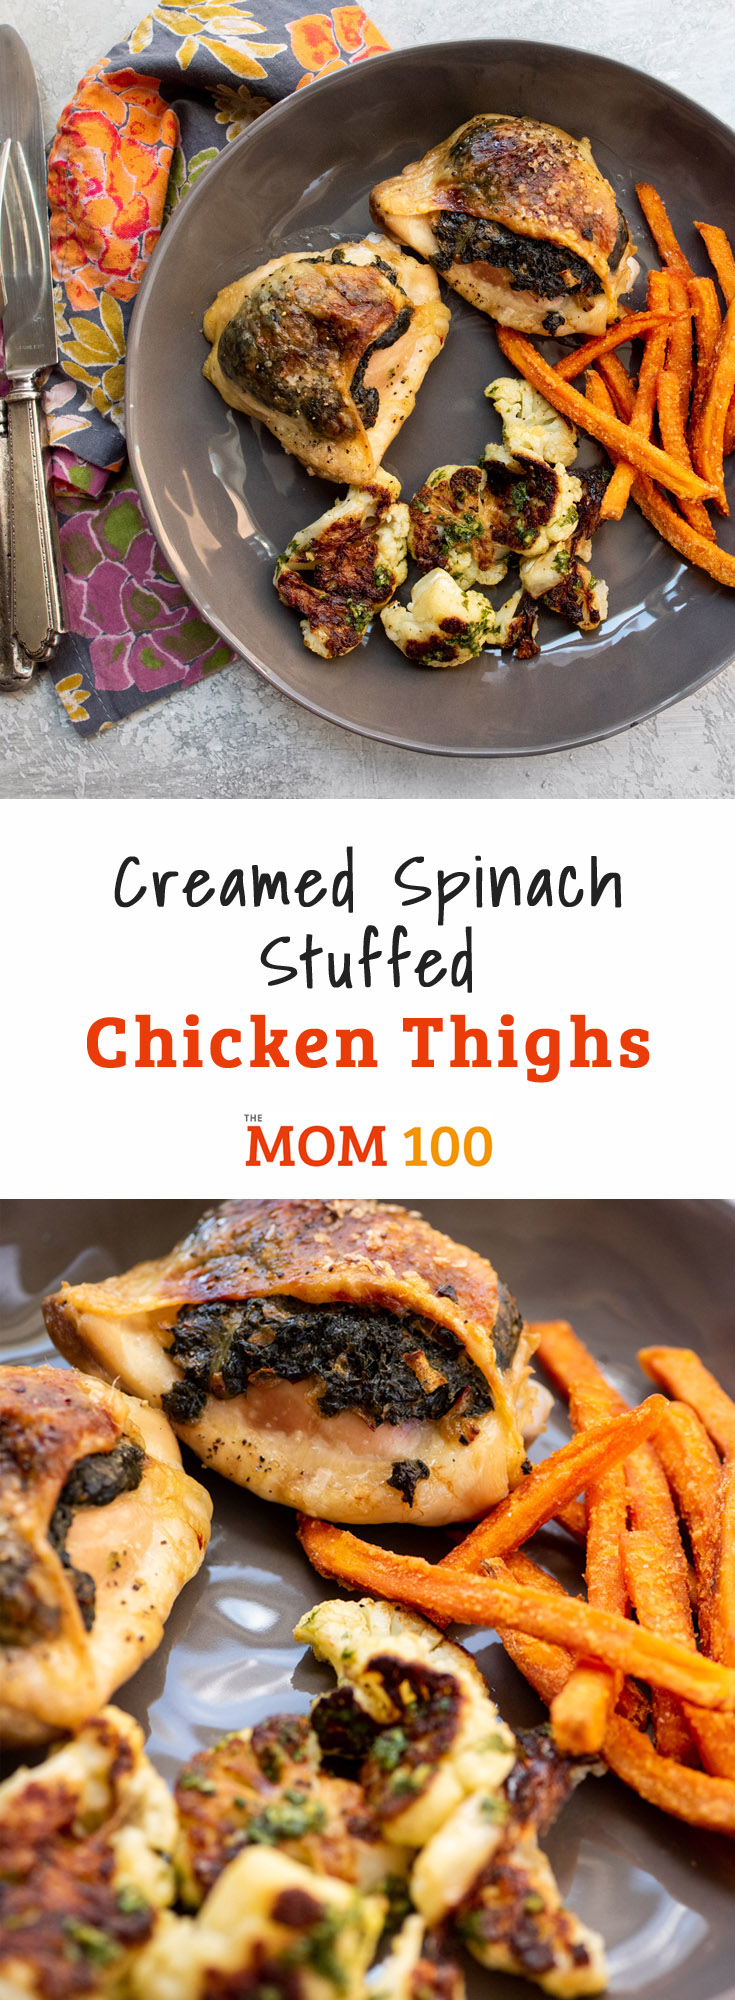 Try these Creamed Spinach Stuffed Chicken Thighs as a simple and slightly elegant way to prepare this humble but wonderful chicken part.